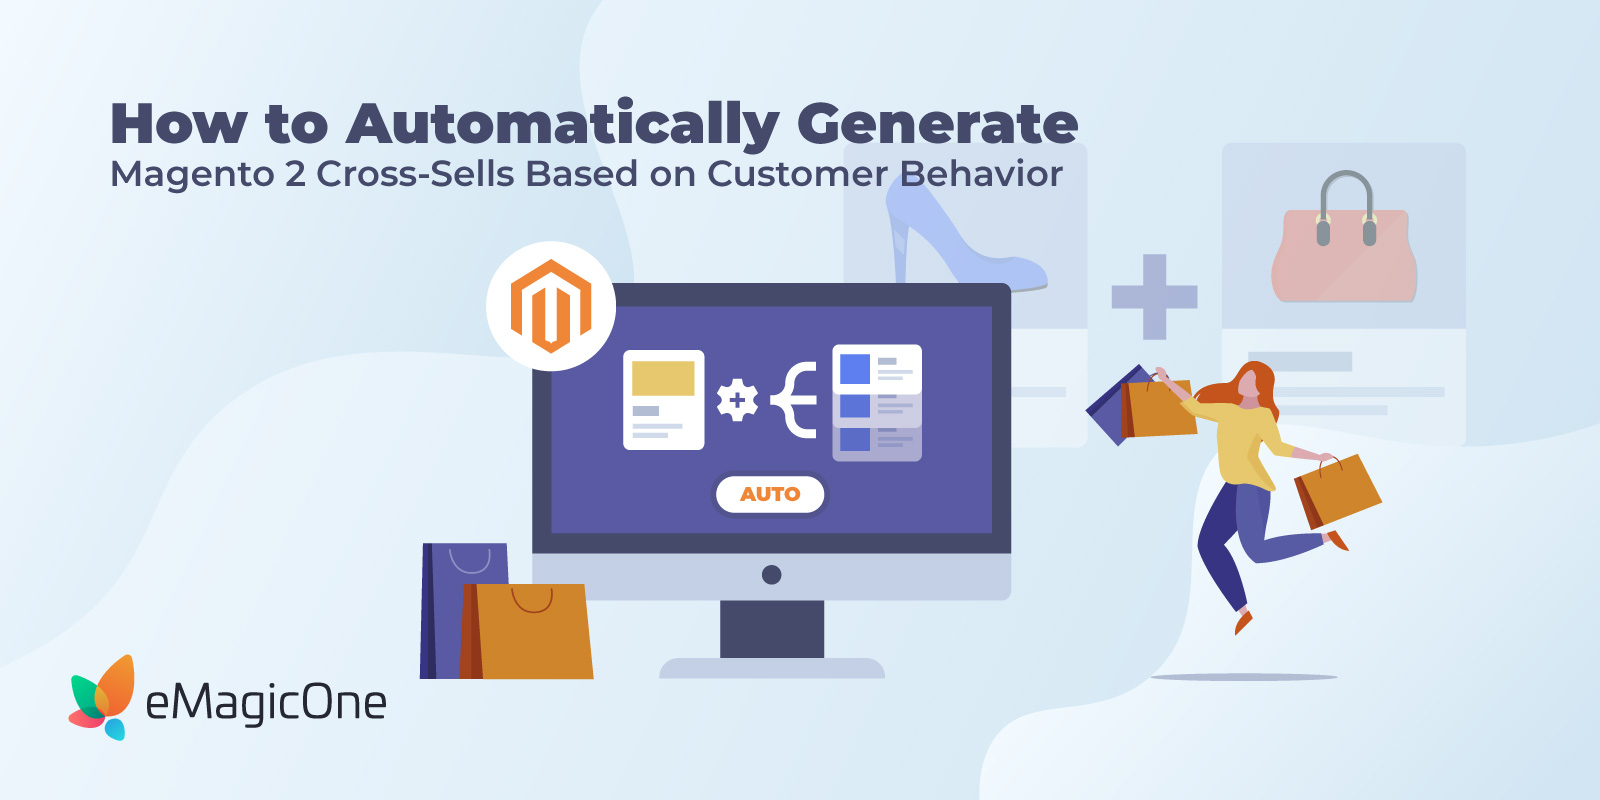 Store Manager for Magento Generate Cross-Sells Based on Order History